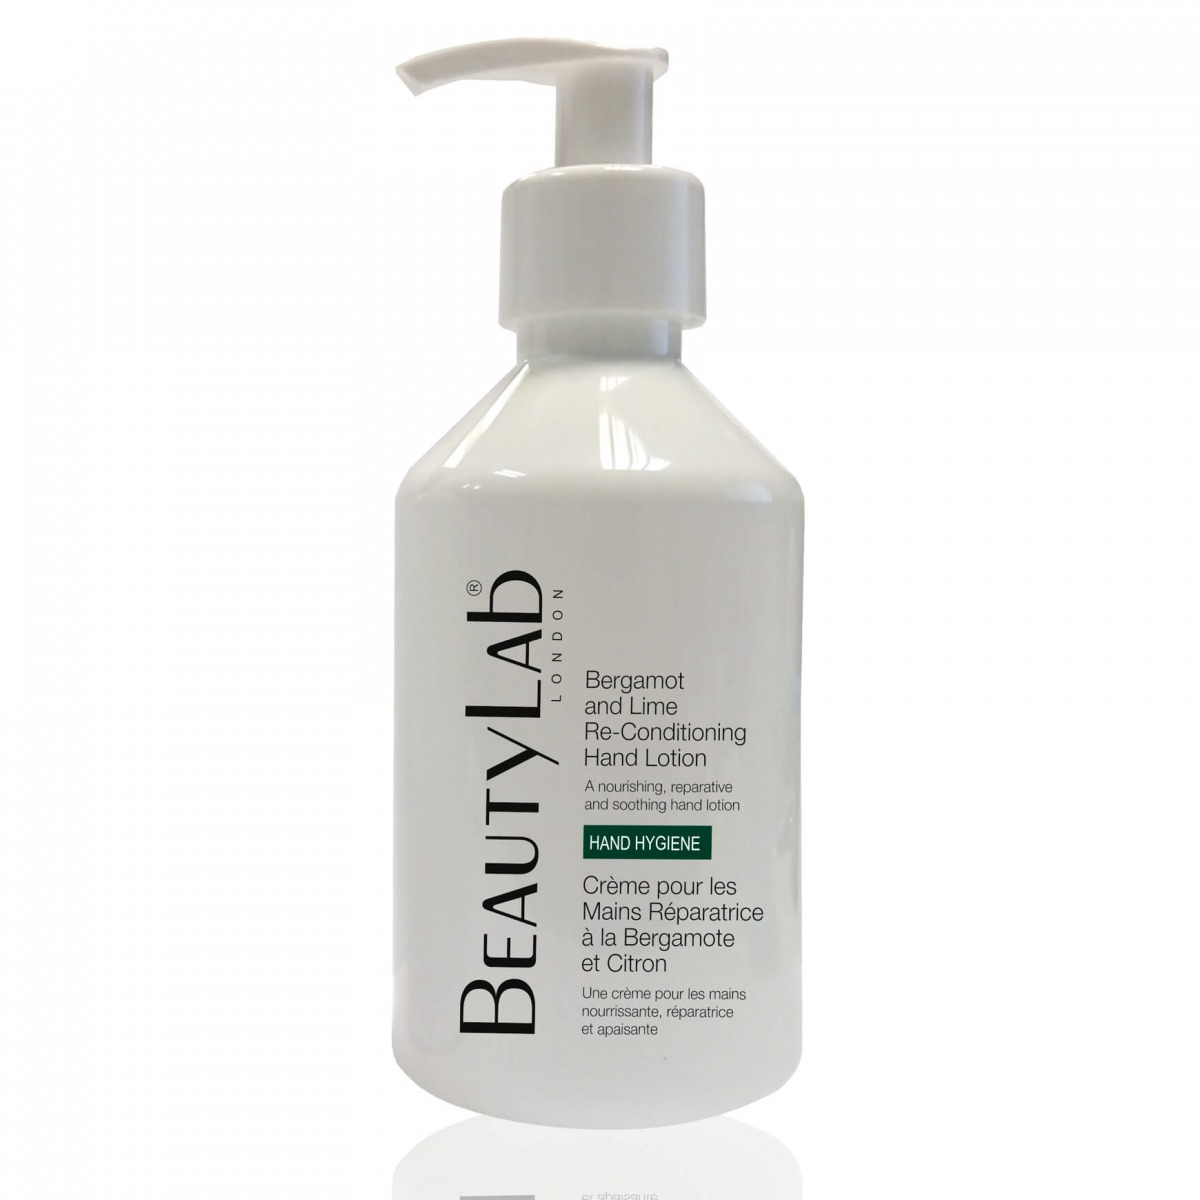 Bergamot and lime re-conditioning Hand Lotion